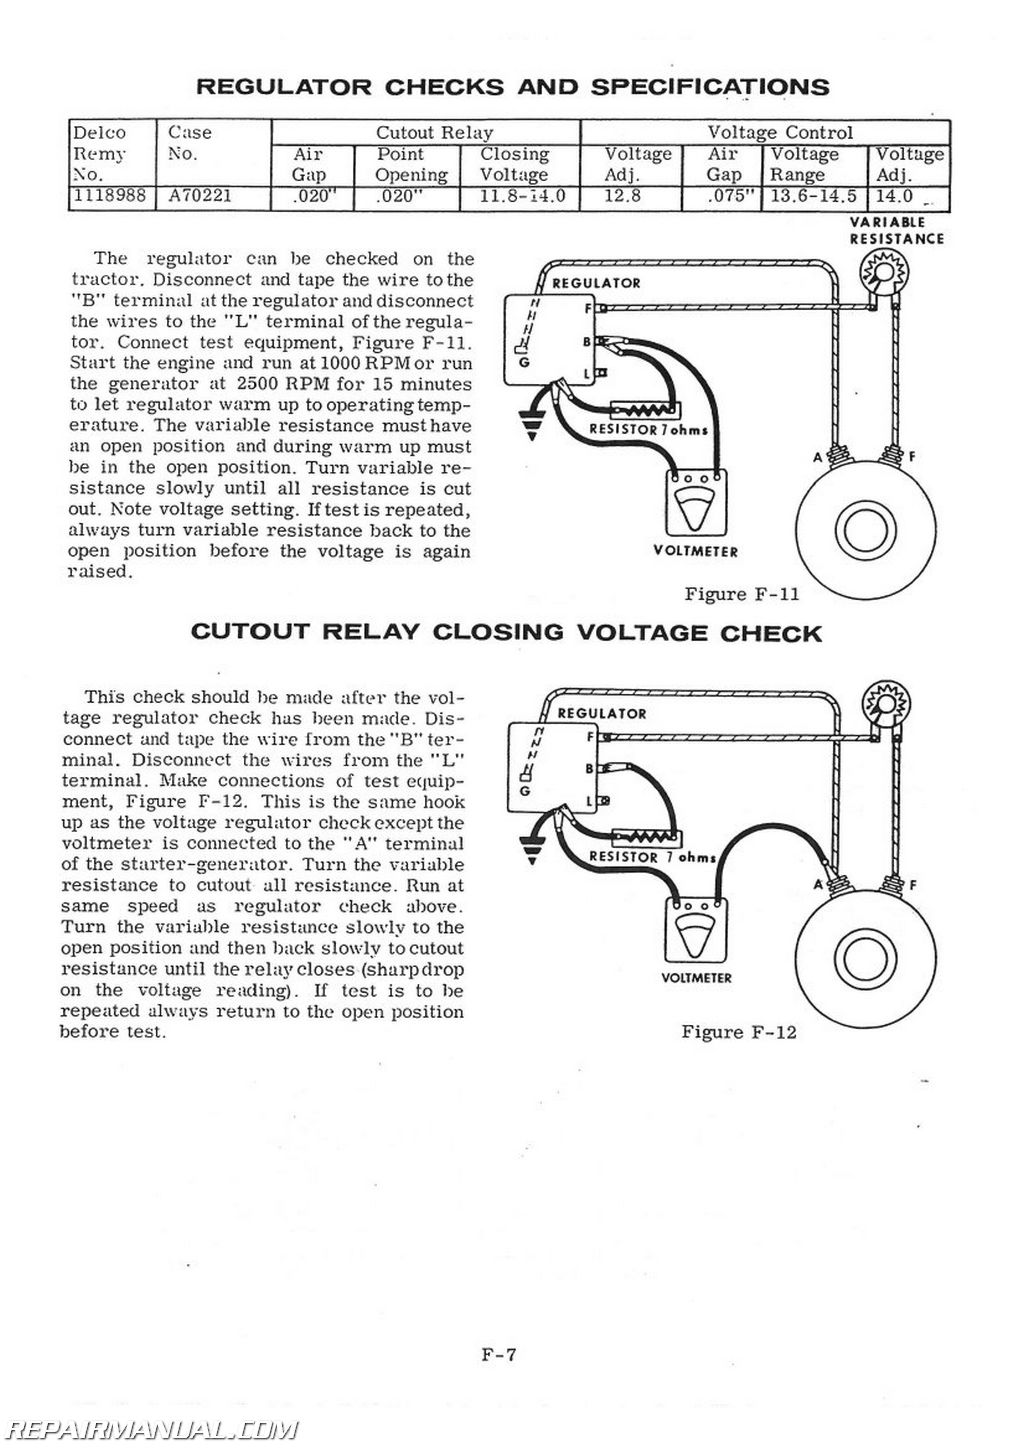 case international 155 and 195 garden tractor service manual rh repairmanual com case 222 garden tractor manual case 224 garden tractor manual